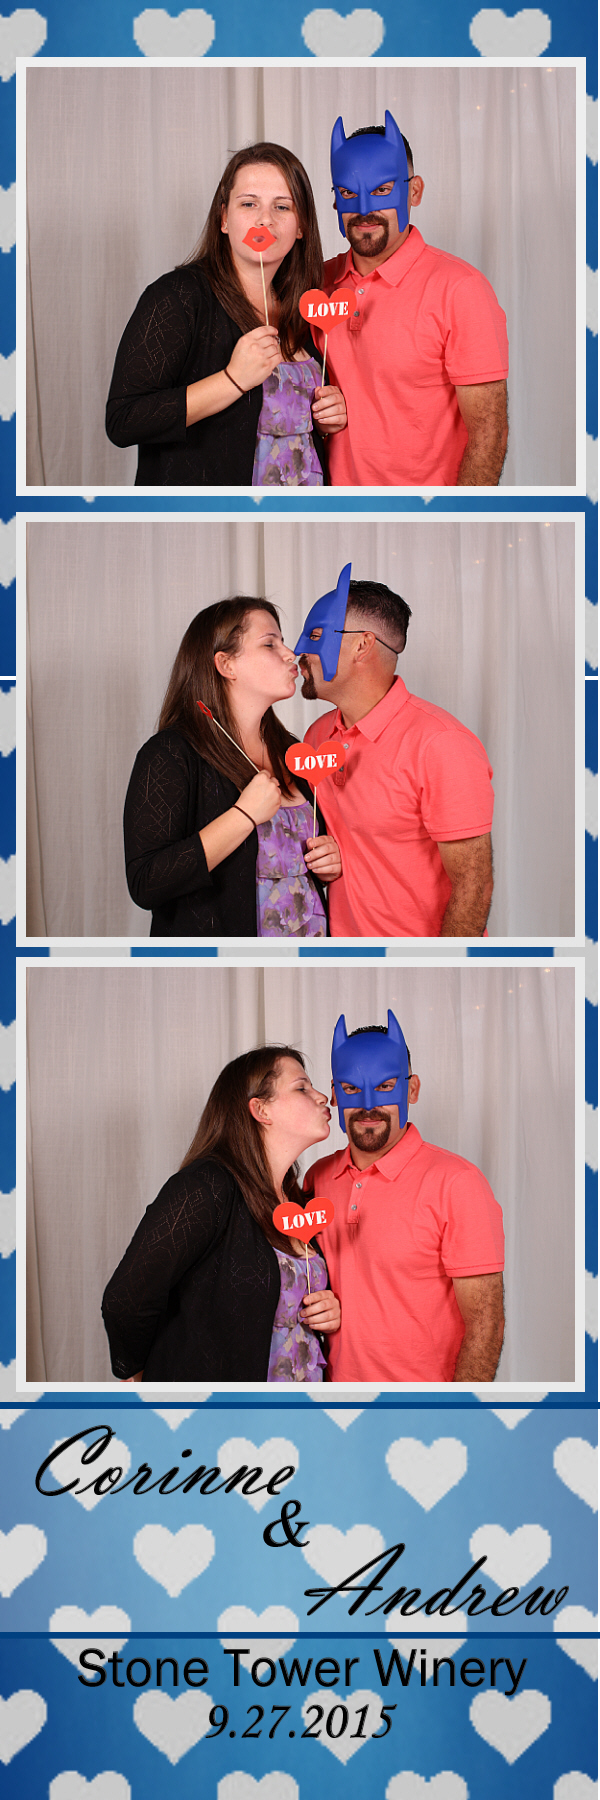 Guest House Events Photo Booth C&A (10).jpg